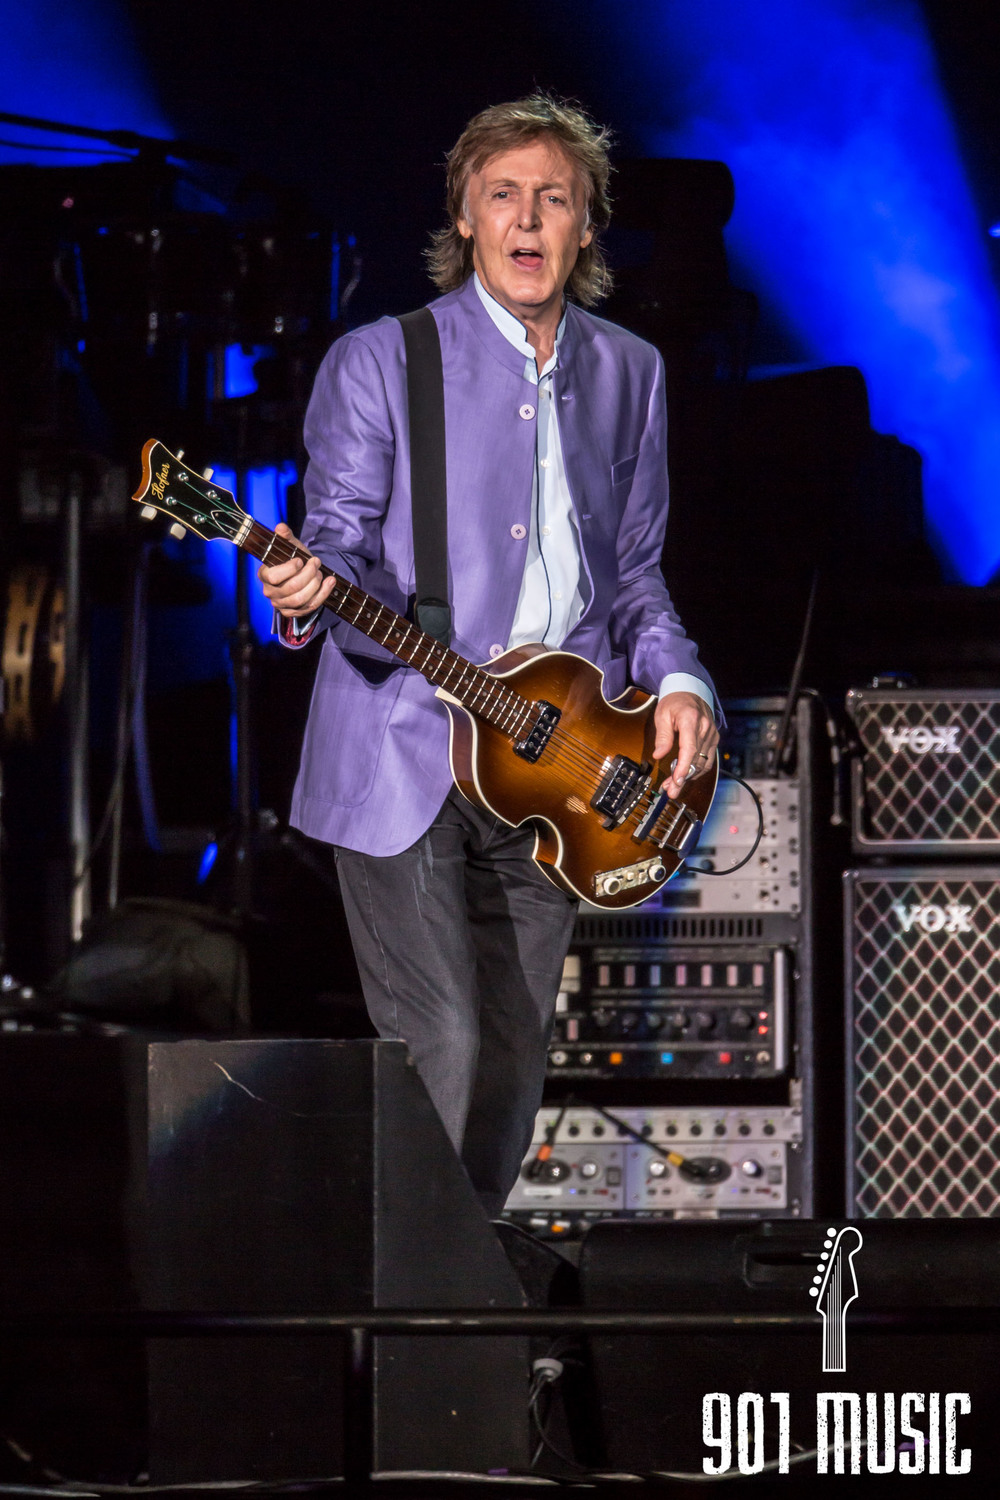 na-08132016-Paul McCartney-17.jpg